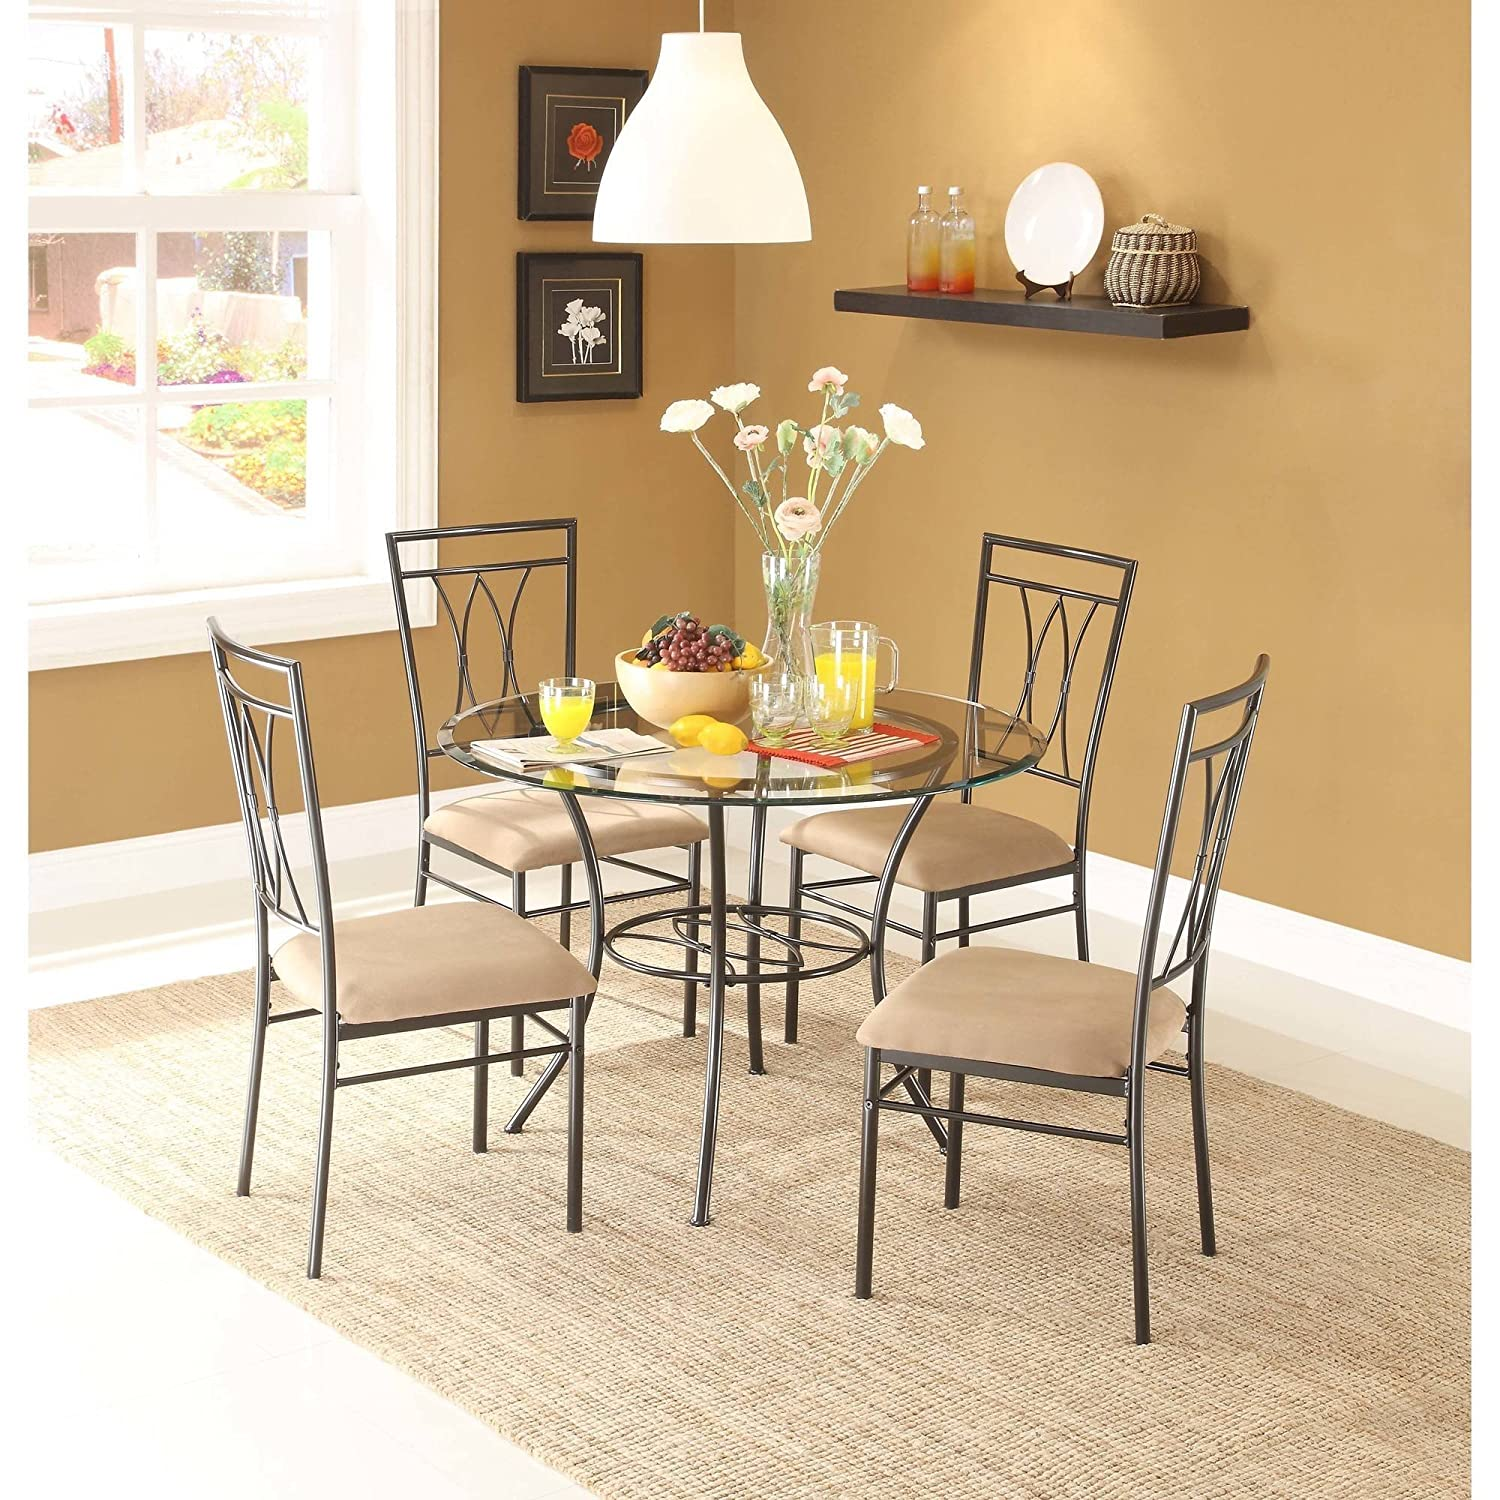 Dining set metal chairs kitchen table furniture modern wood 4 breakfast 5 piece stylish apartment home side table size 42l x 42w x 30h